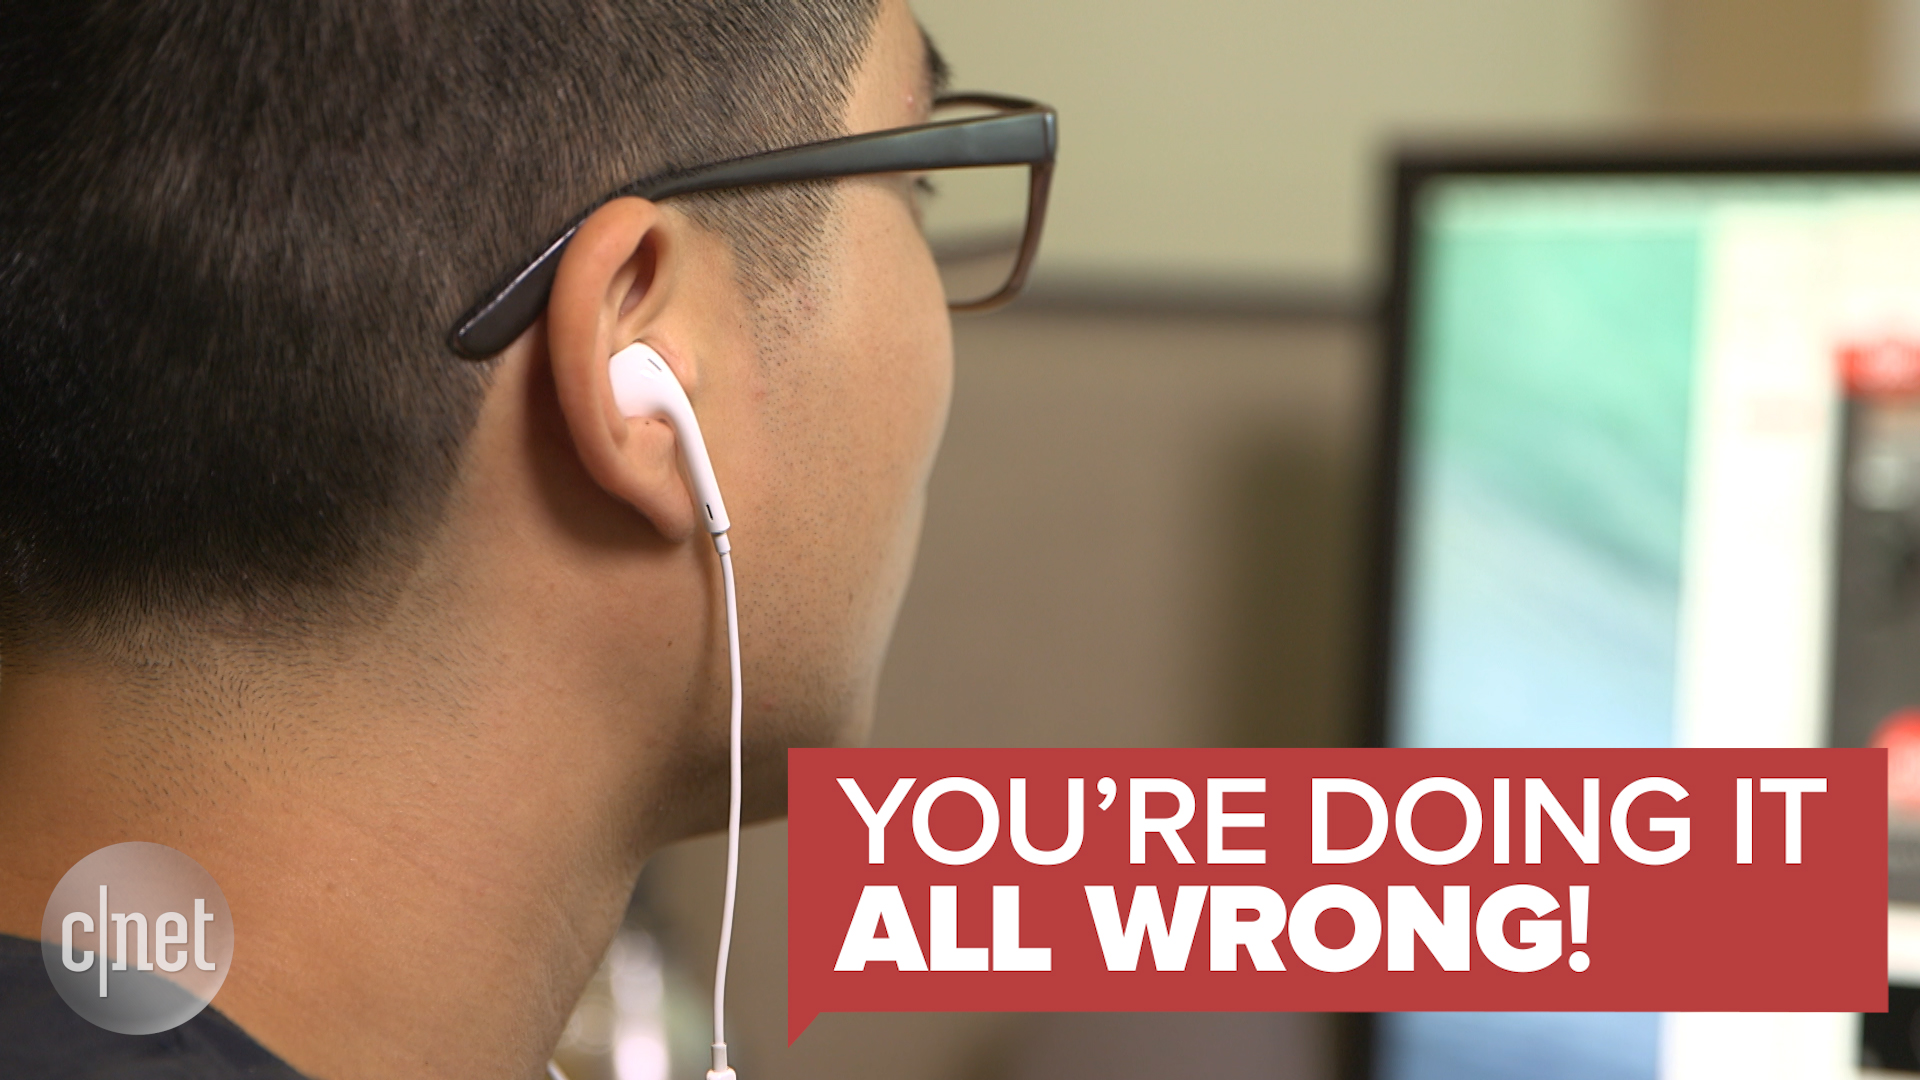 Video: The inconvenient truth about wearing earbuds